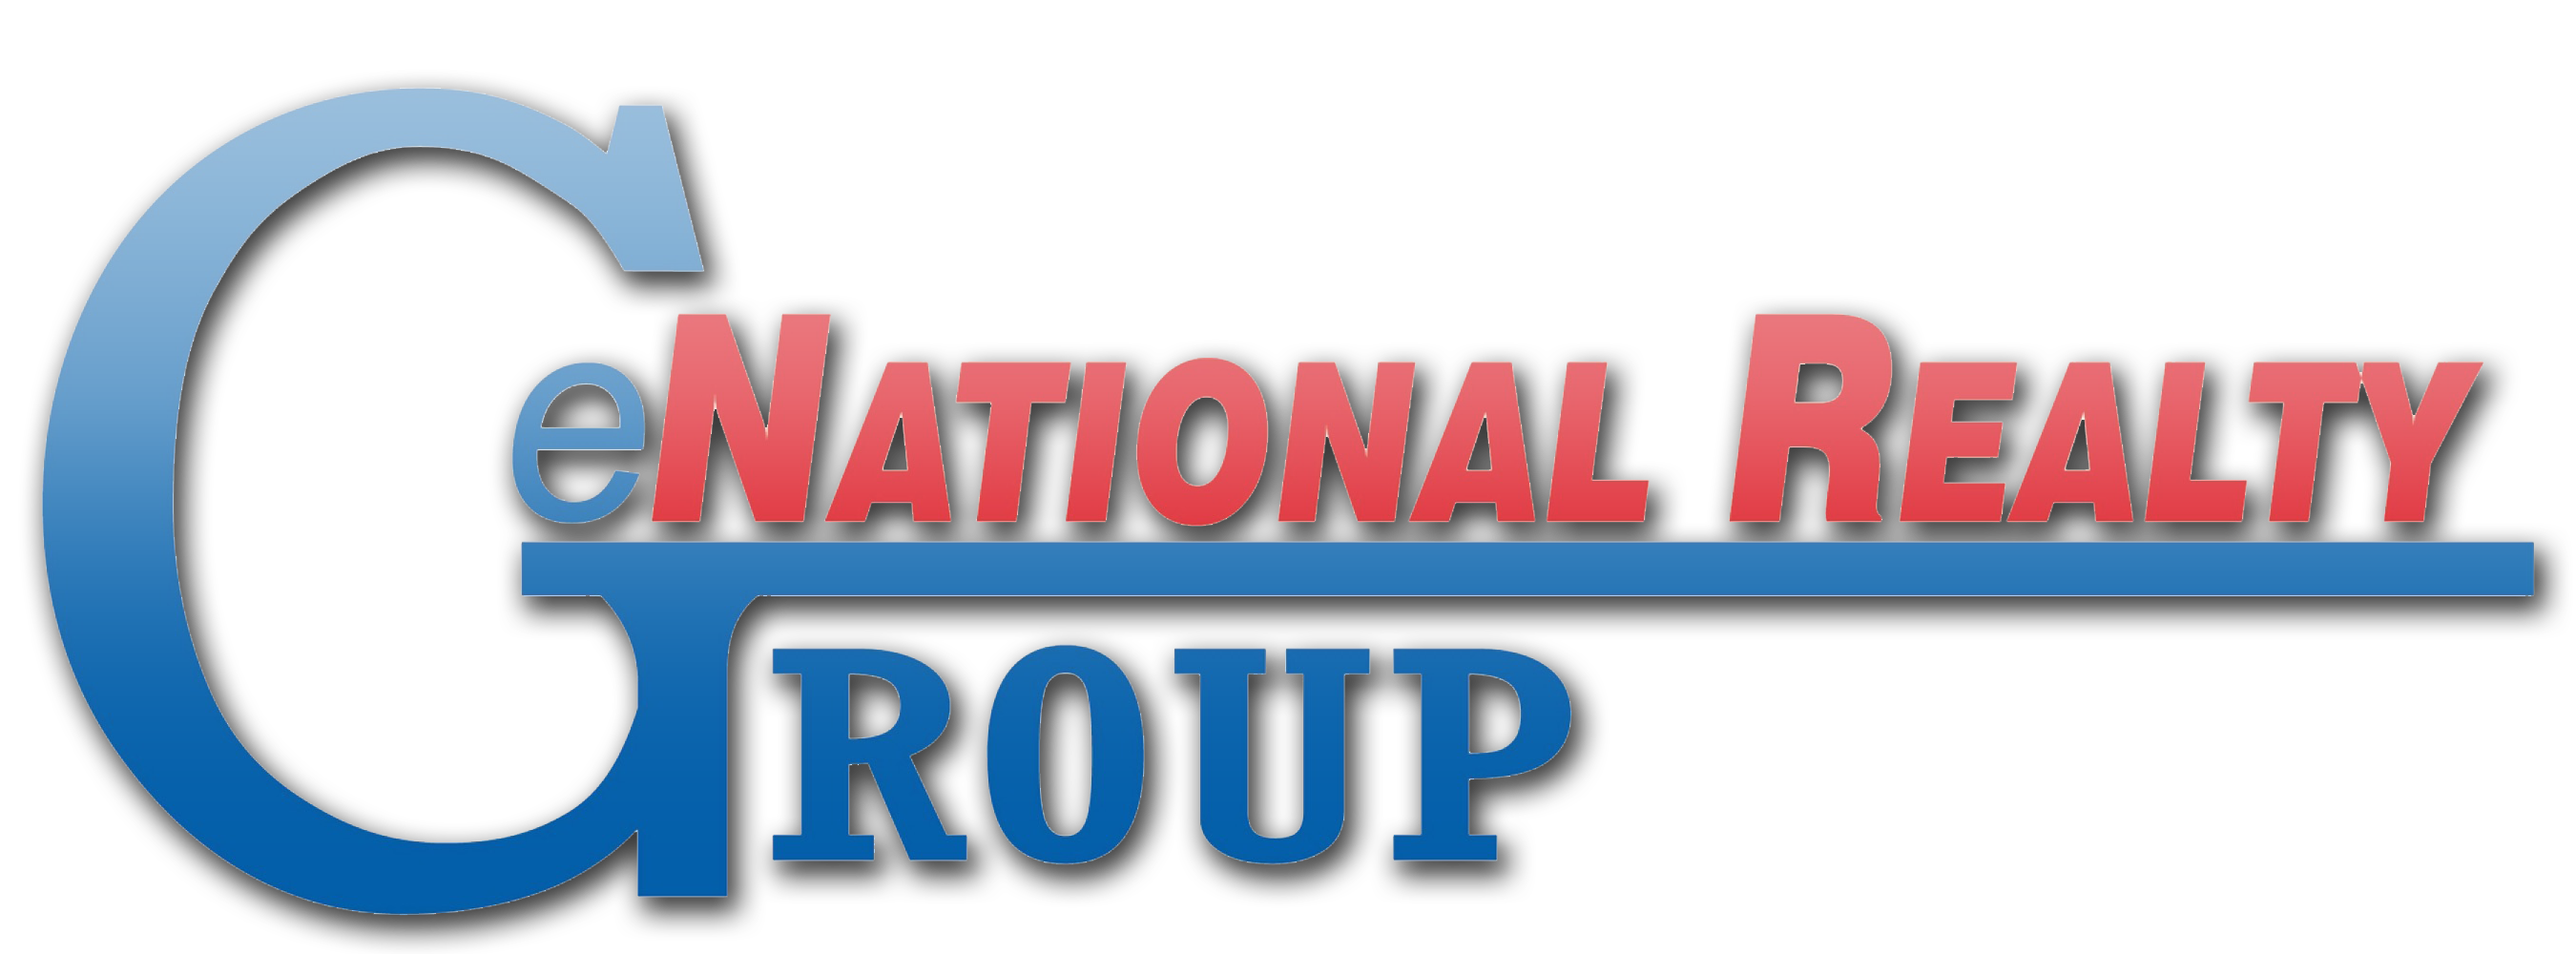 eNational Realty Group